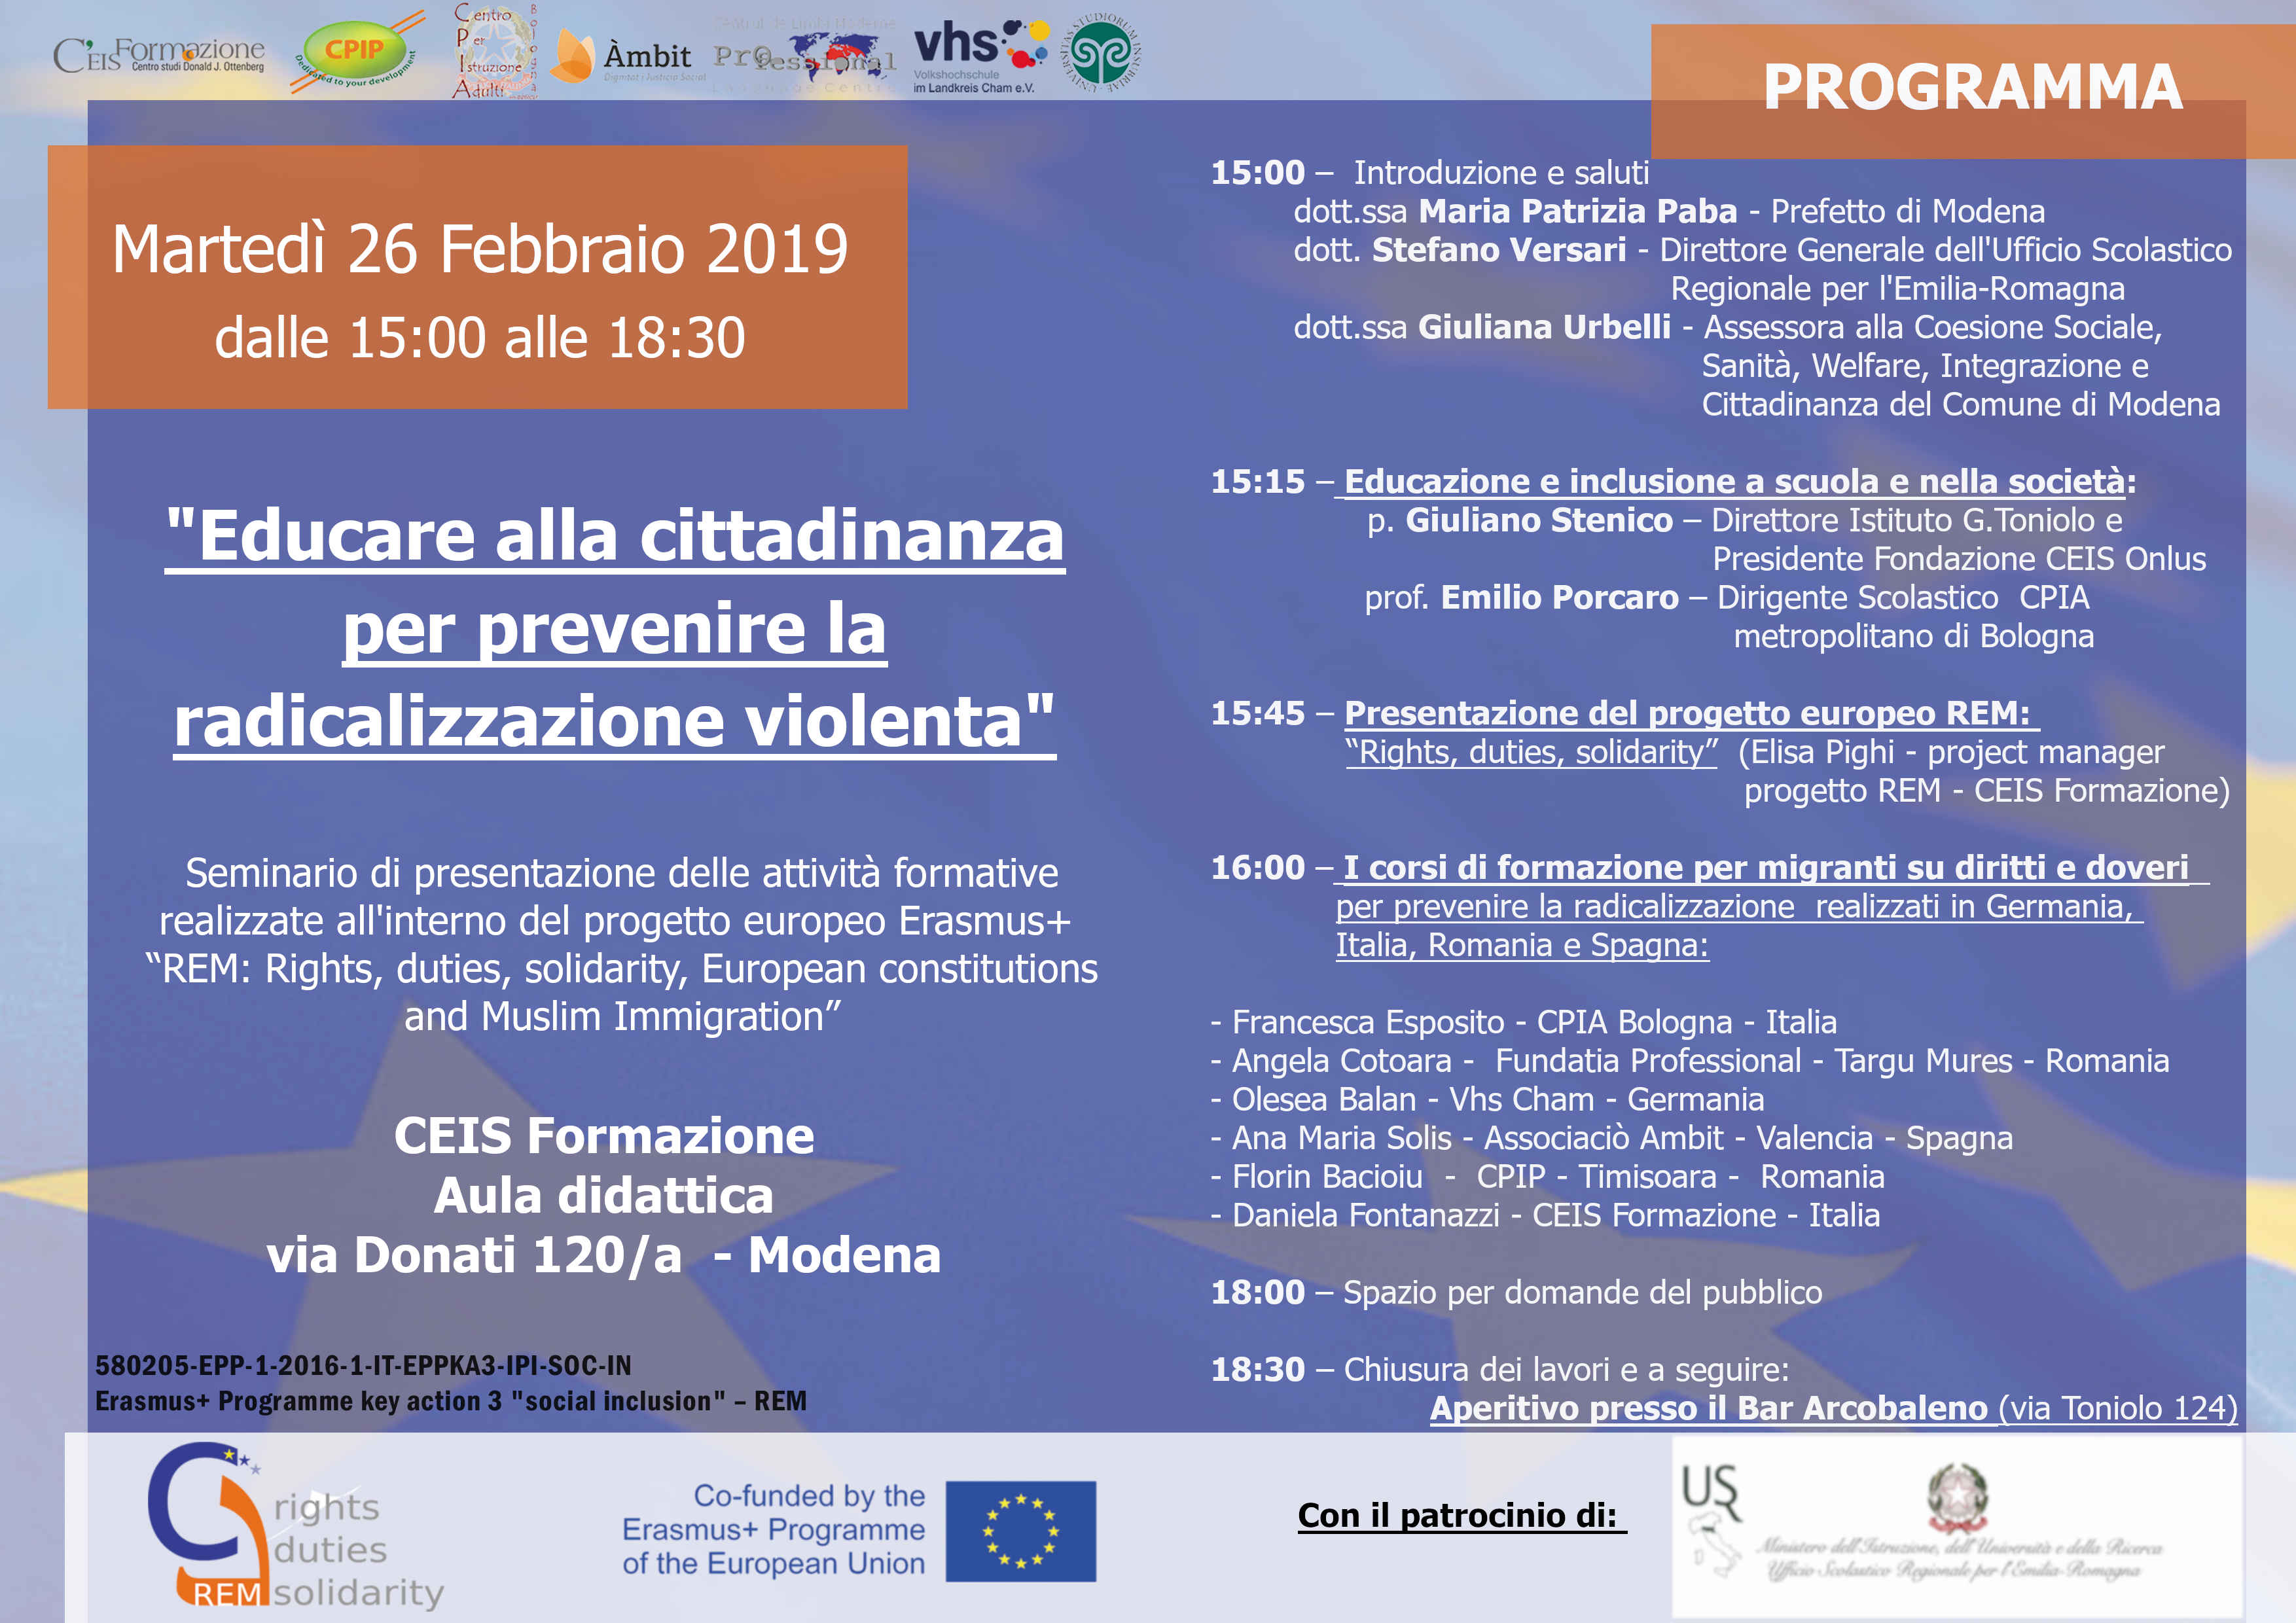 programma 26.02.2019 ultimostampare.png